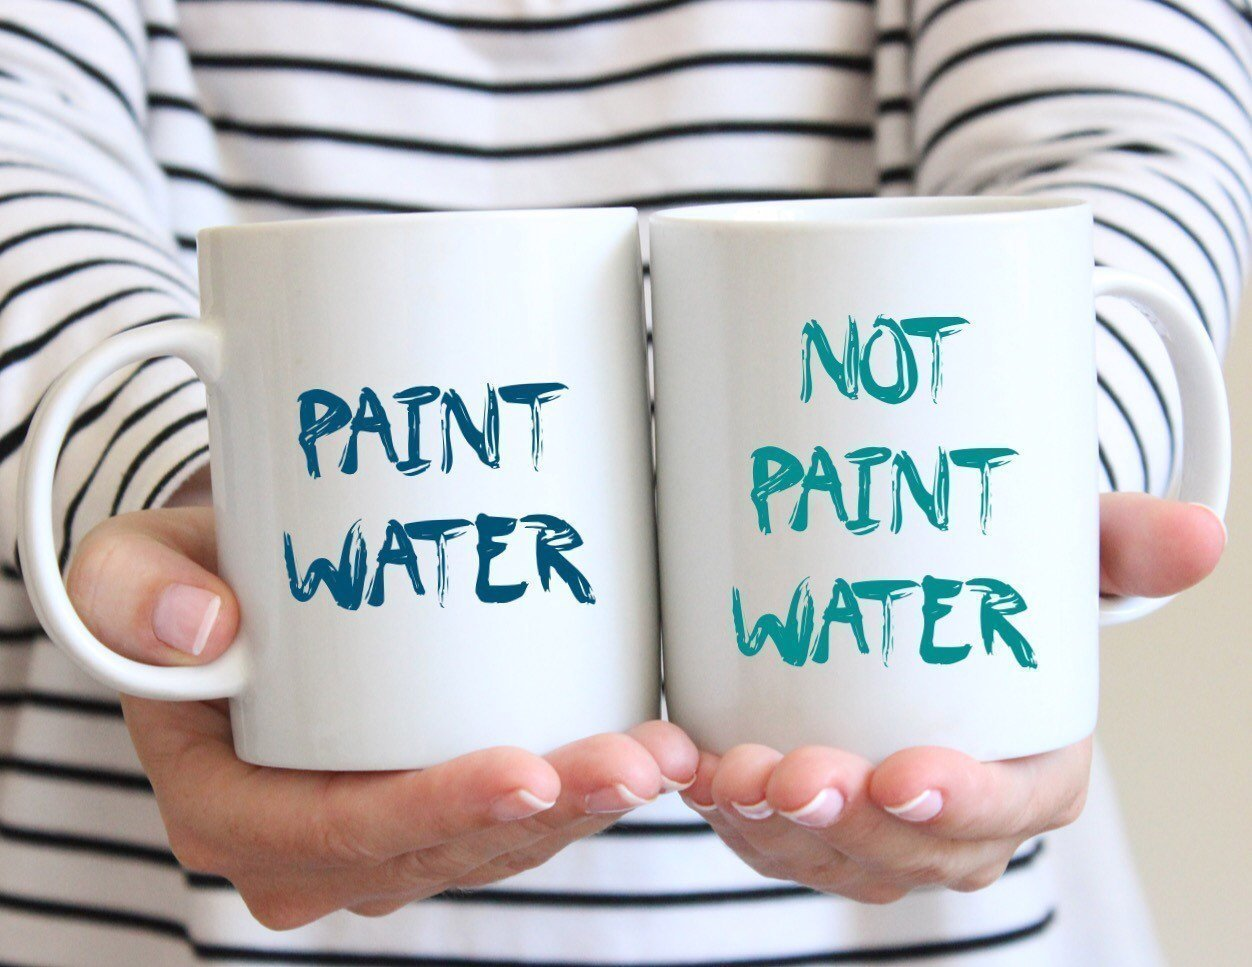 Unique Creative Gift Idea, Funny Coffee Mug Set, Funny Artist Mugs, Gift for Artist, Mug for Painter, Tea Cups, Funny Paint Water Mugs, Couple Mugs, Christmas Gift